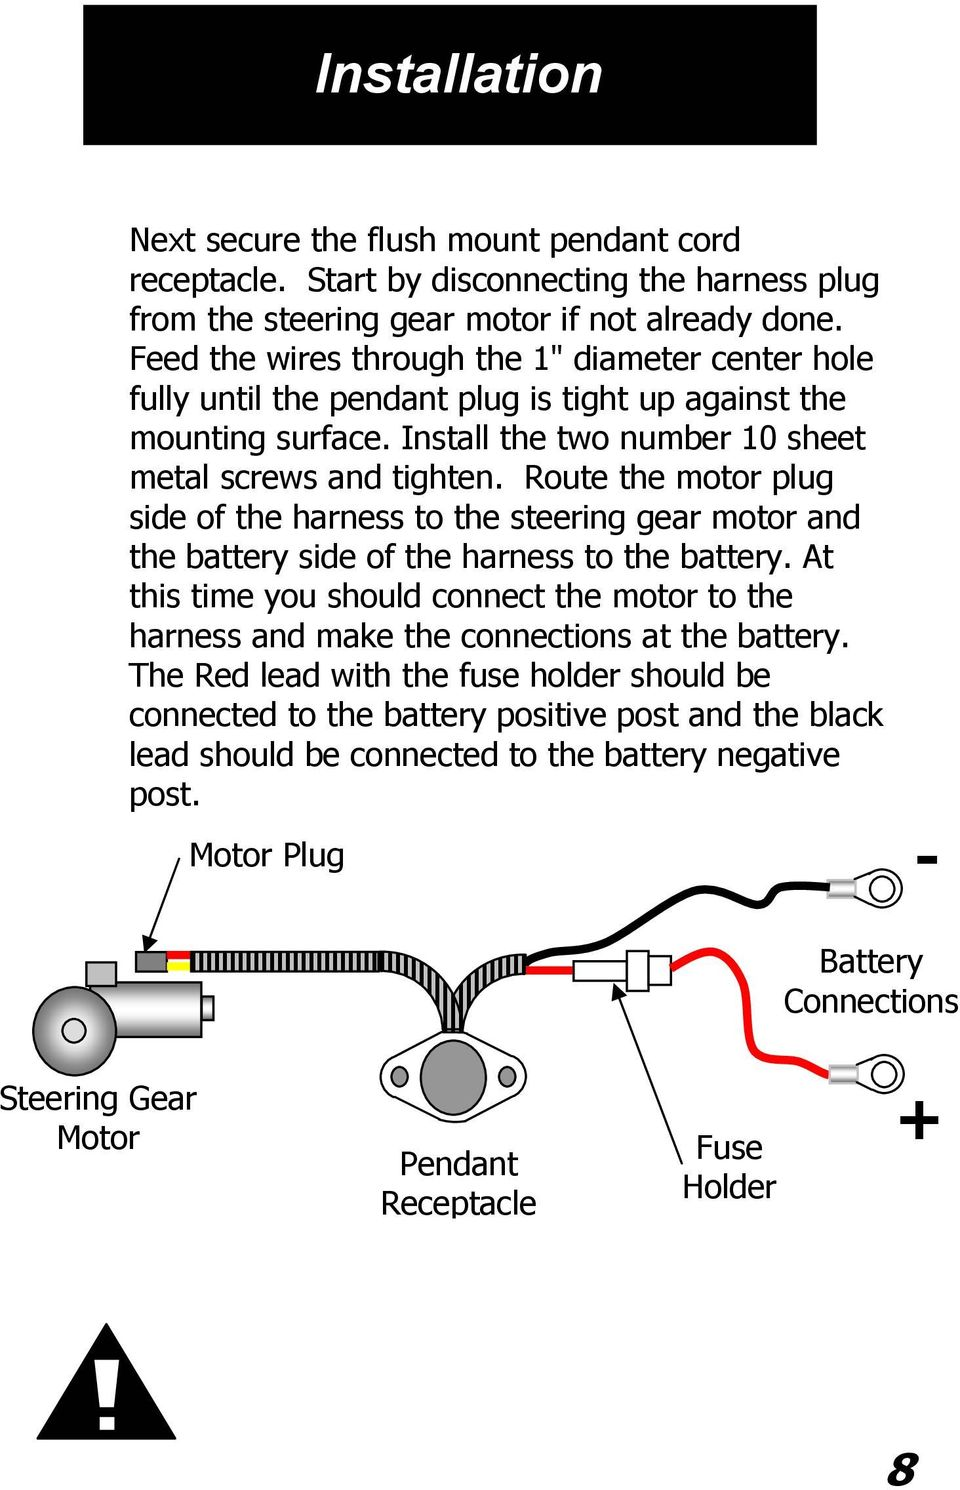 Route the motor plug side of the harness to the steering gear motor and the battery side of the harness to the battery.